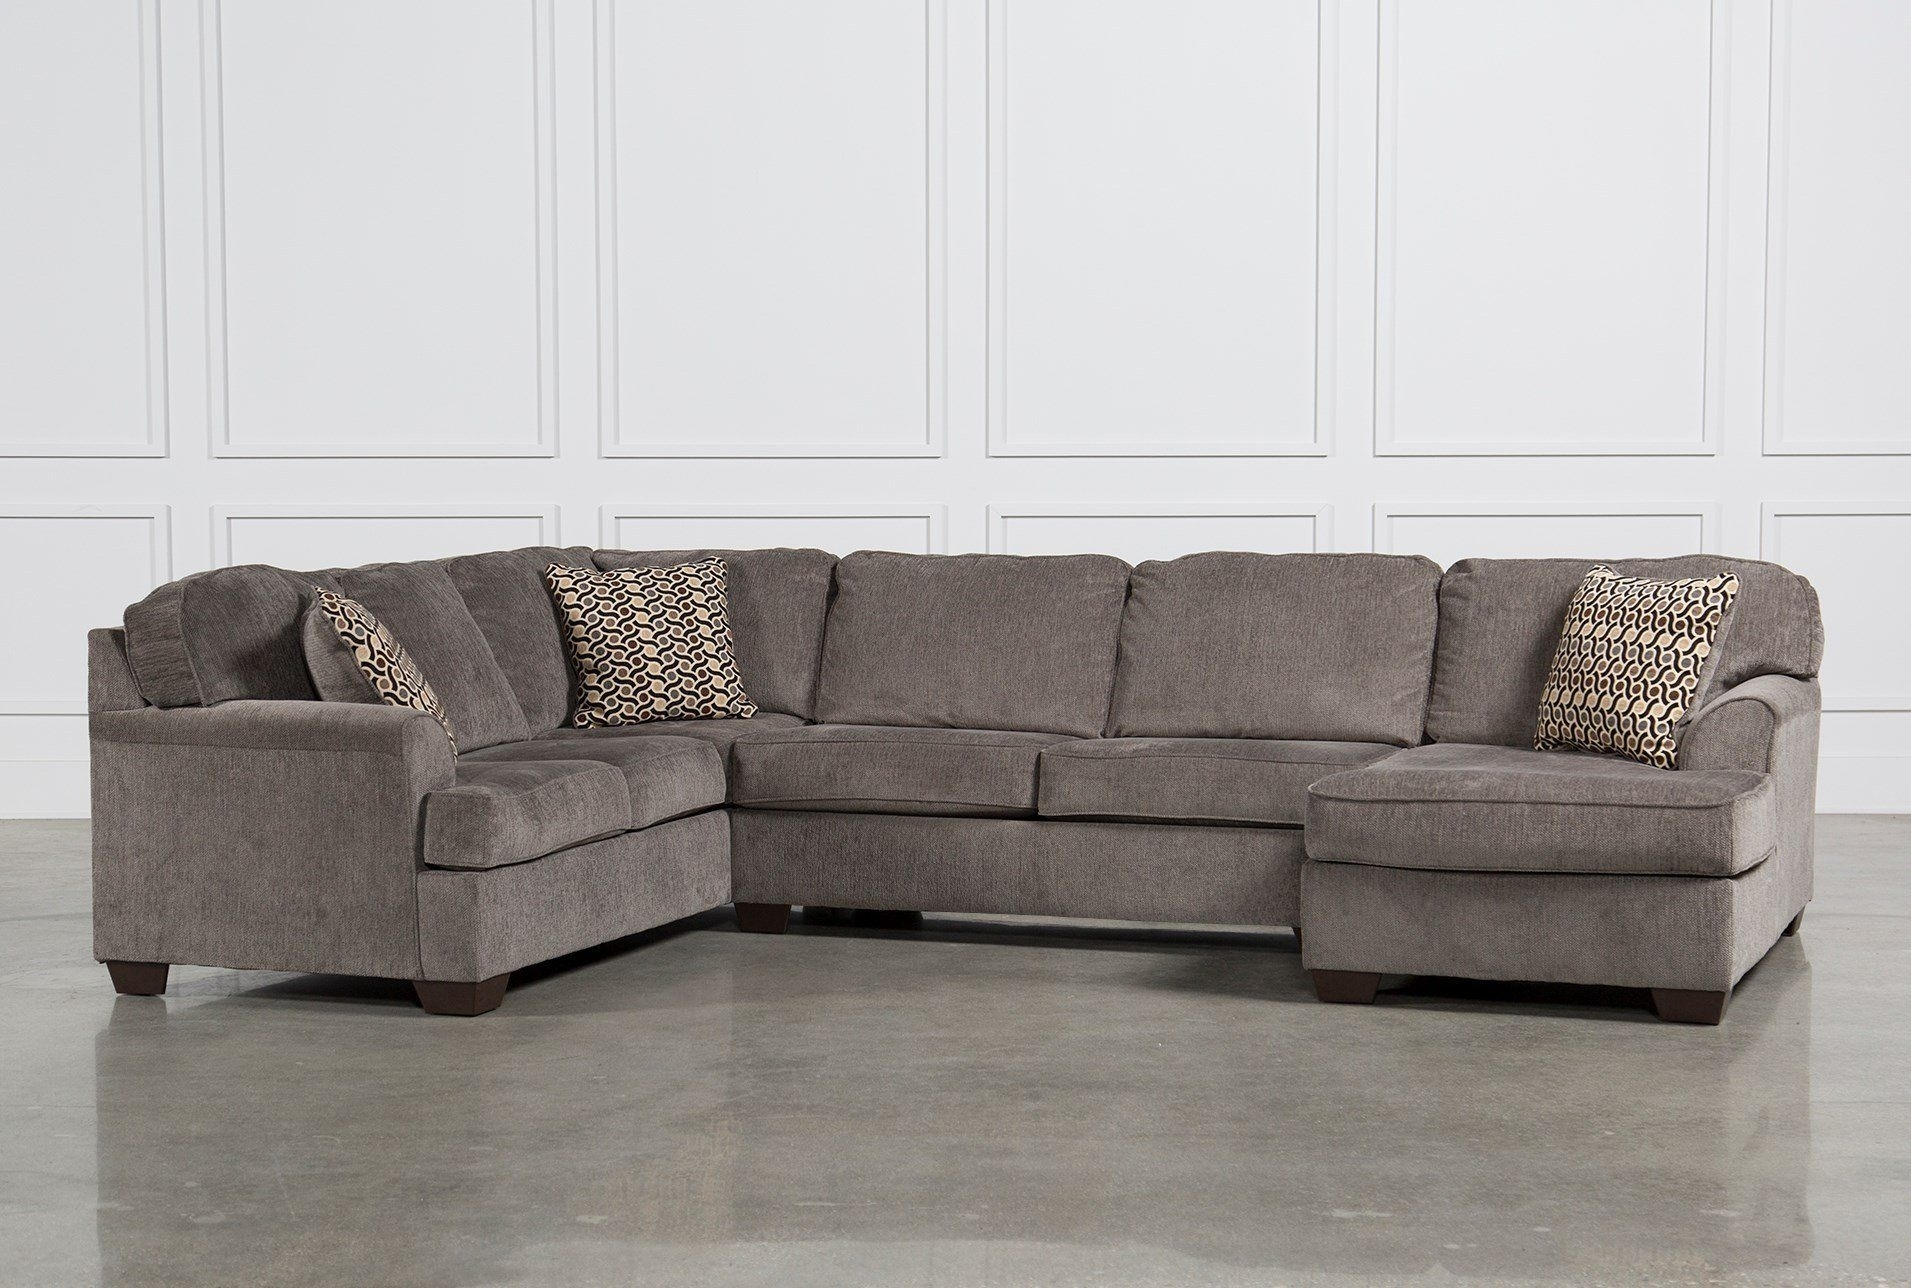 Loric Smoke 3 Piece Sectional W/raf Chaise | Upholstery, Pillows And Within Malbry Point 3 Piece Sectionals With Laf Chaise (View 4 of 25)